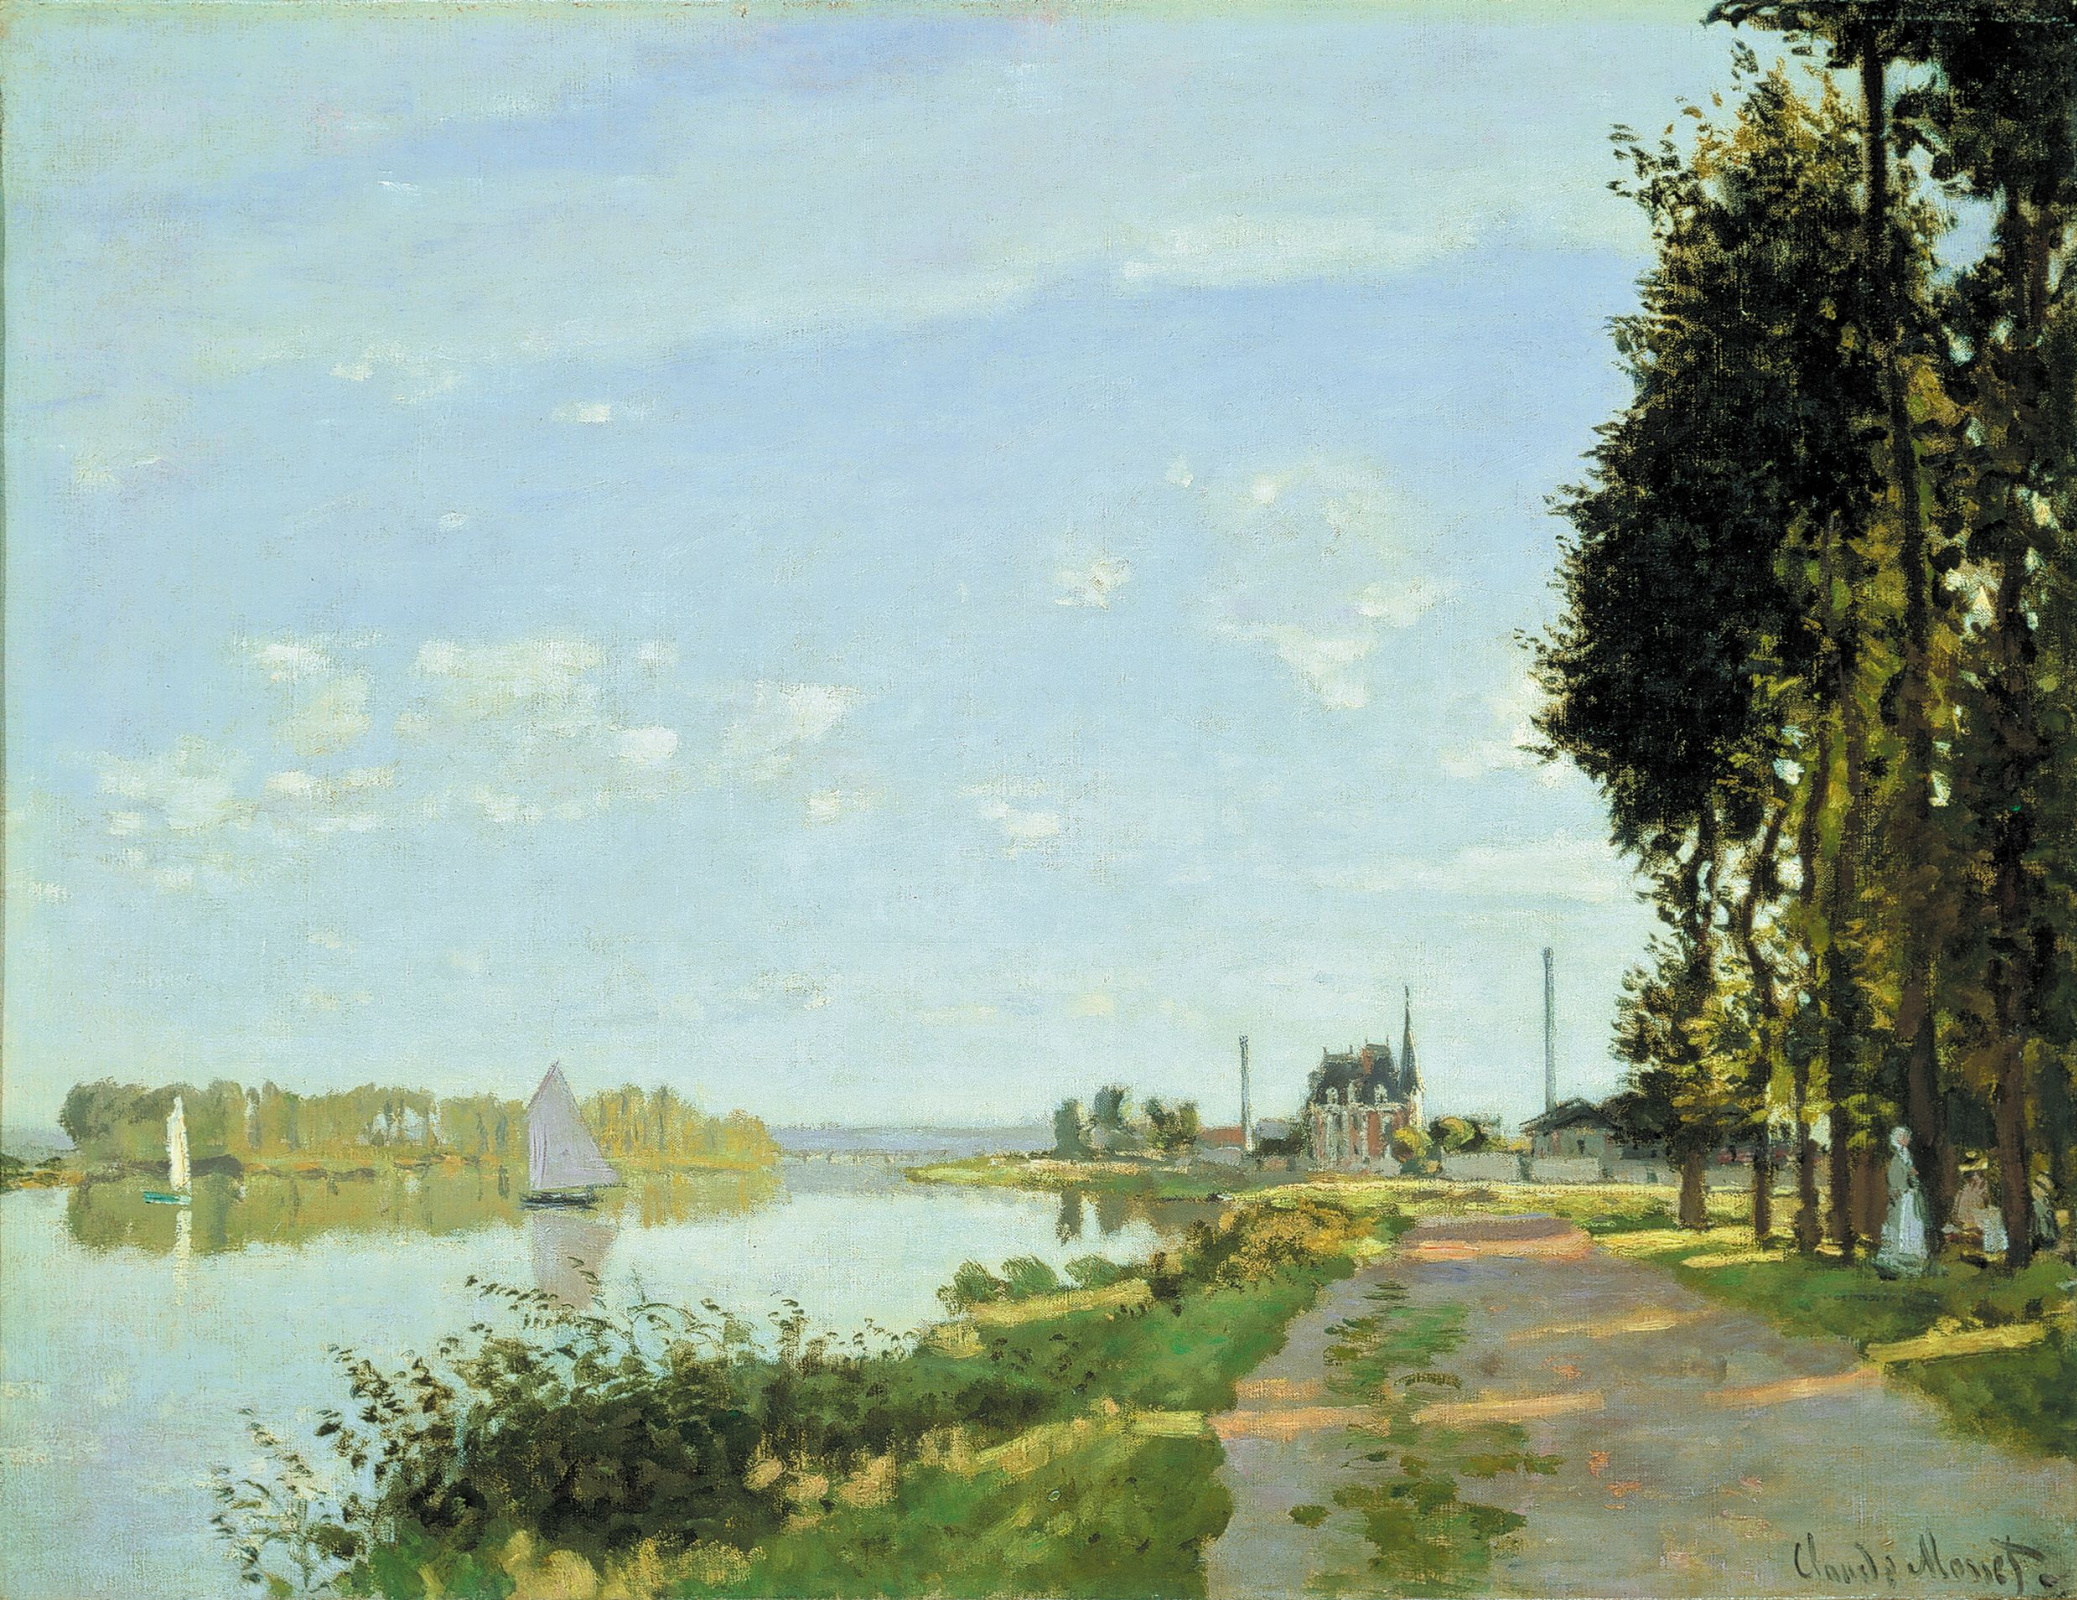 Argenteuil by Claude Monet: History, Analysis & Facts